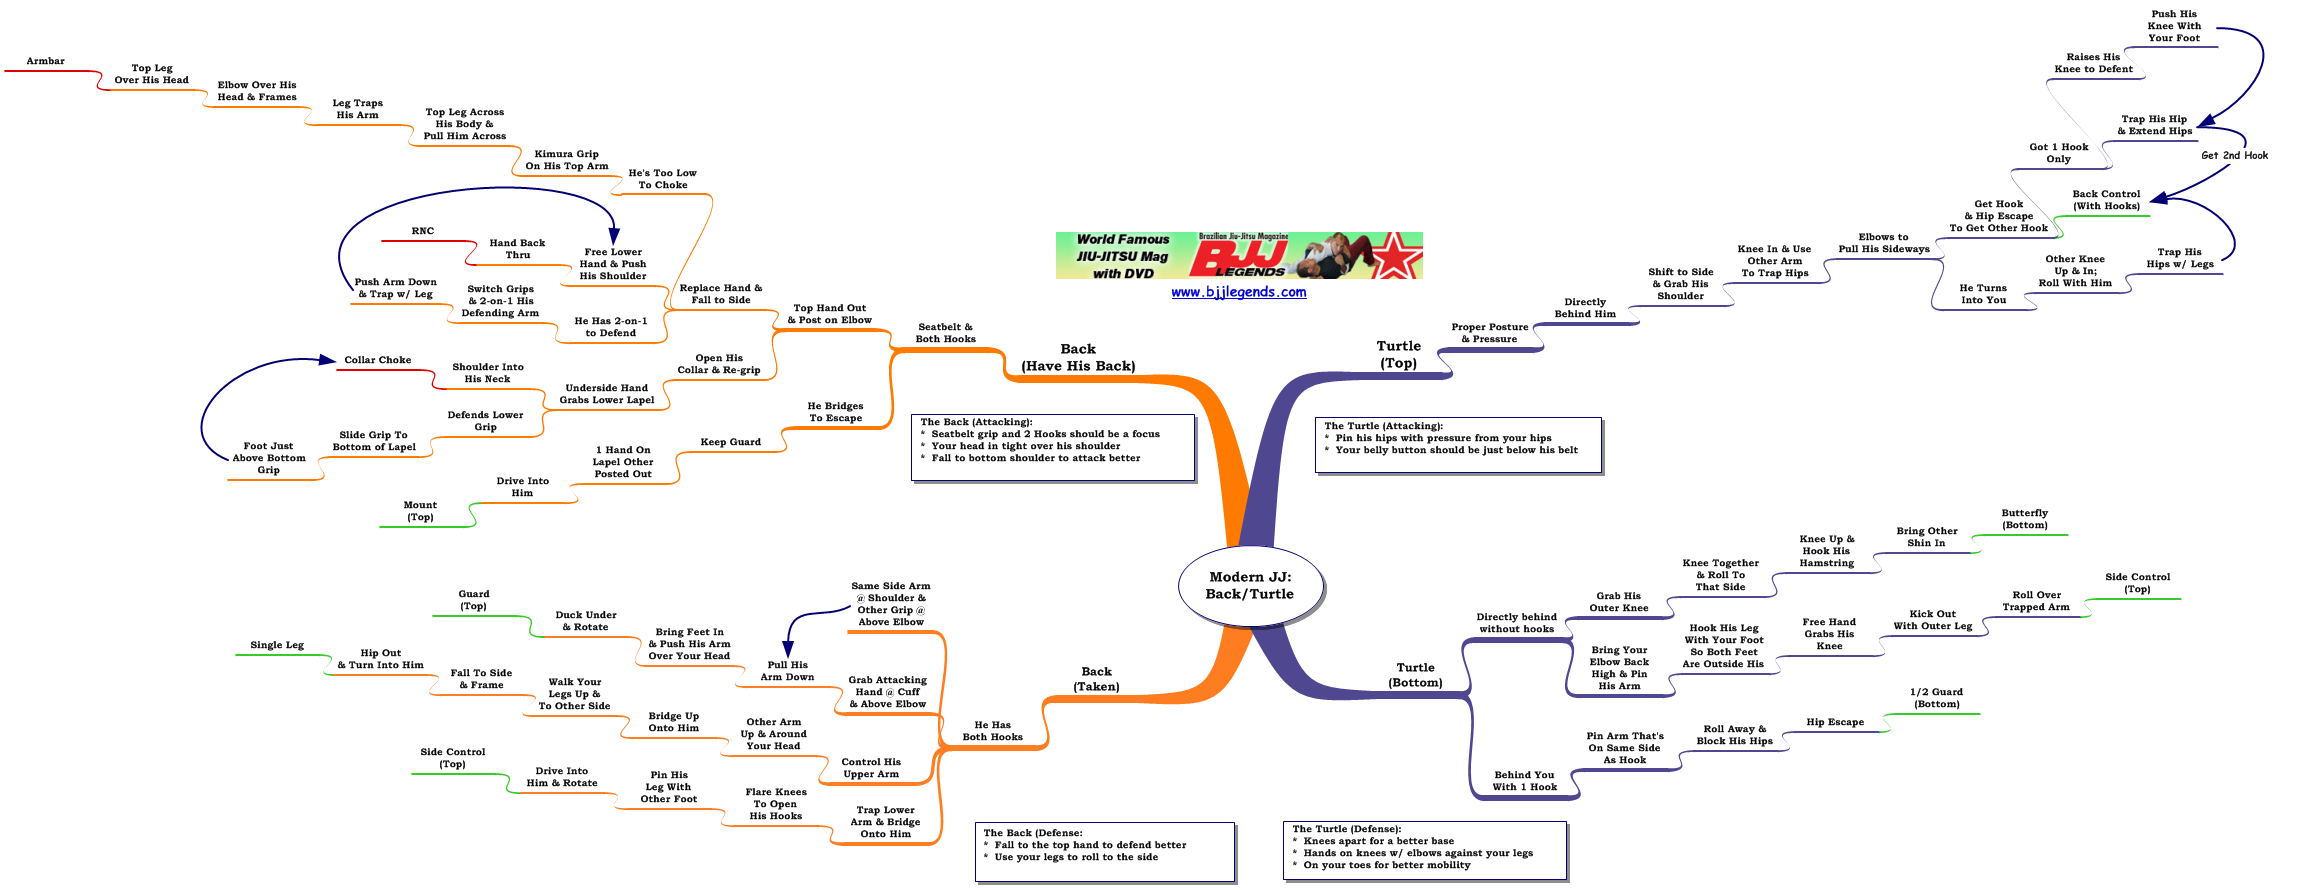 Review/Mindmap: Modern Jiu-Jitsu the Turtle & Back